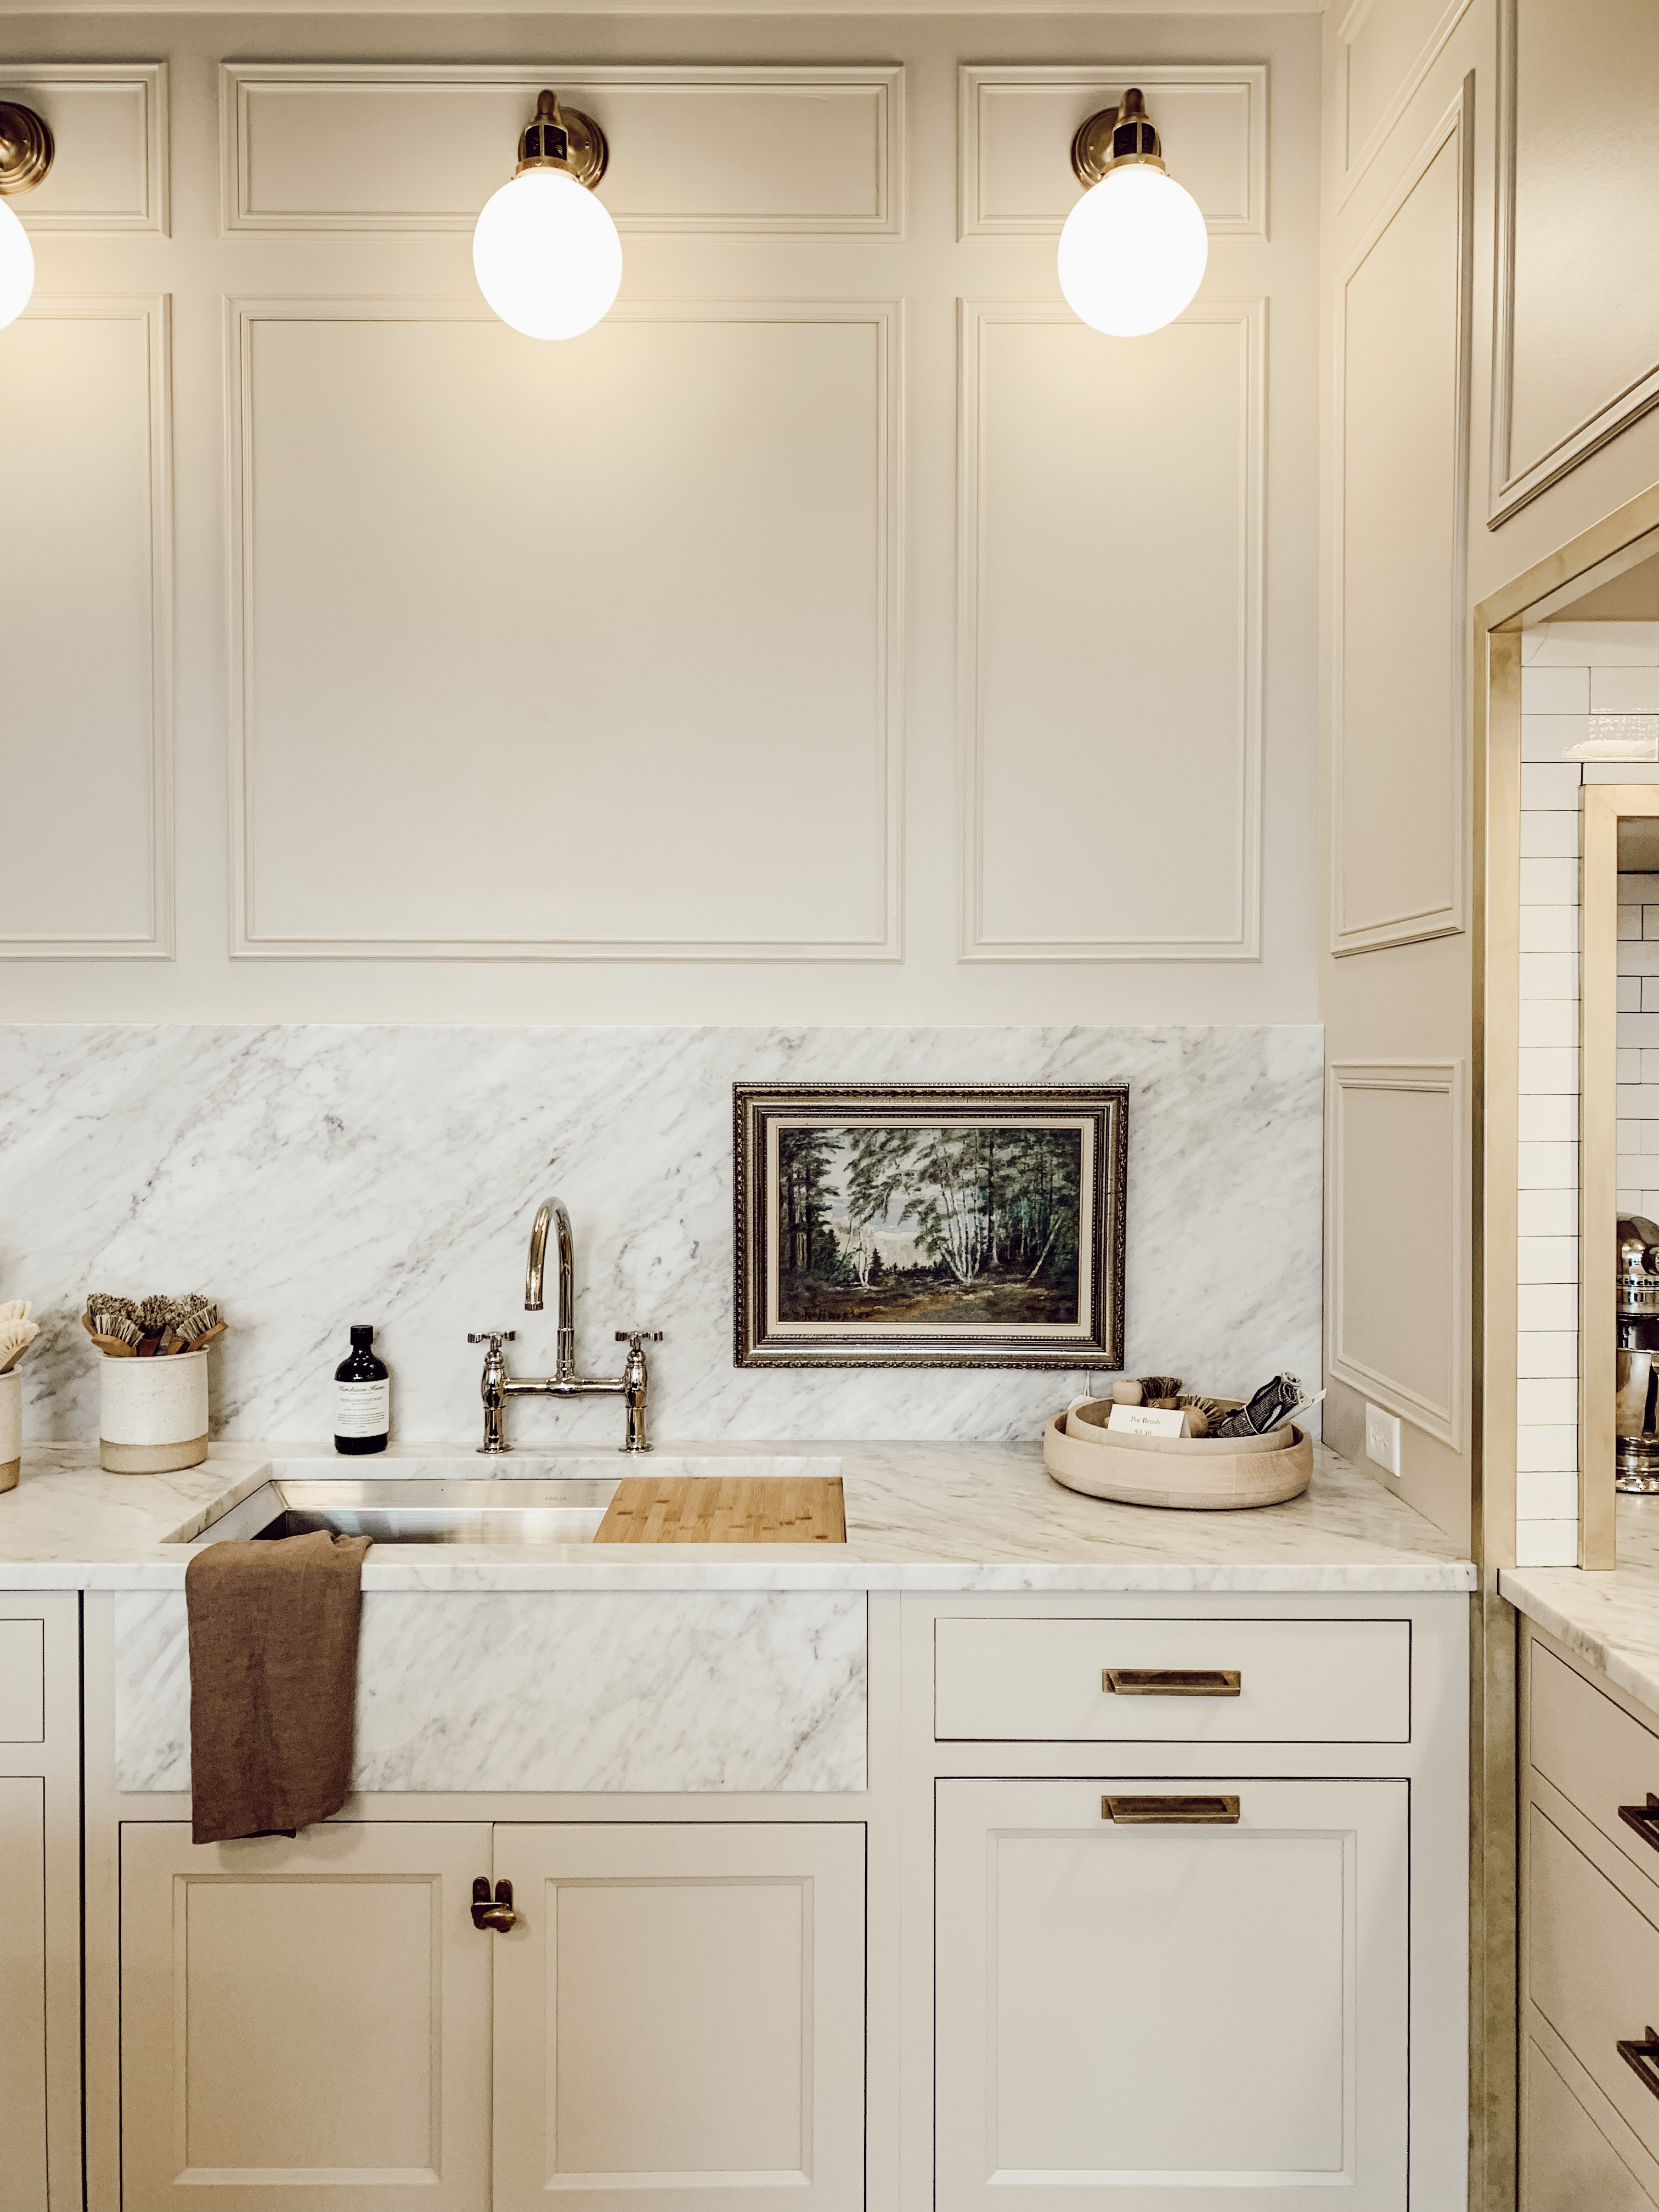 The Best Kitchen Paint Colors In 2020 The Identité Collective